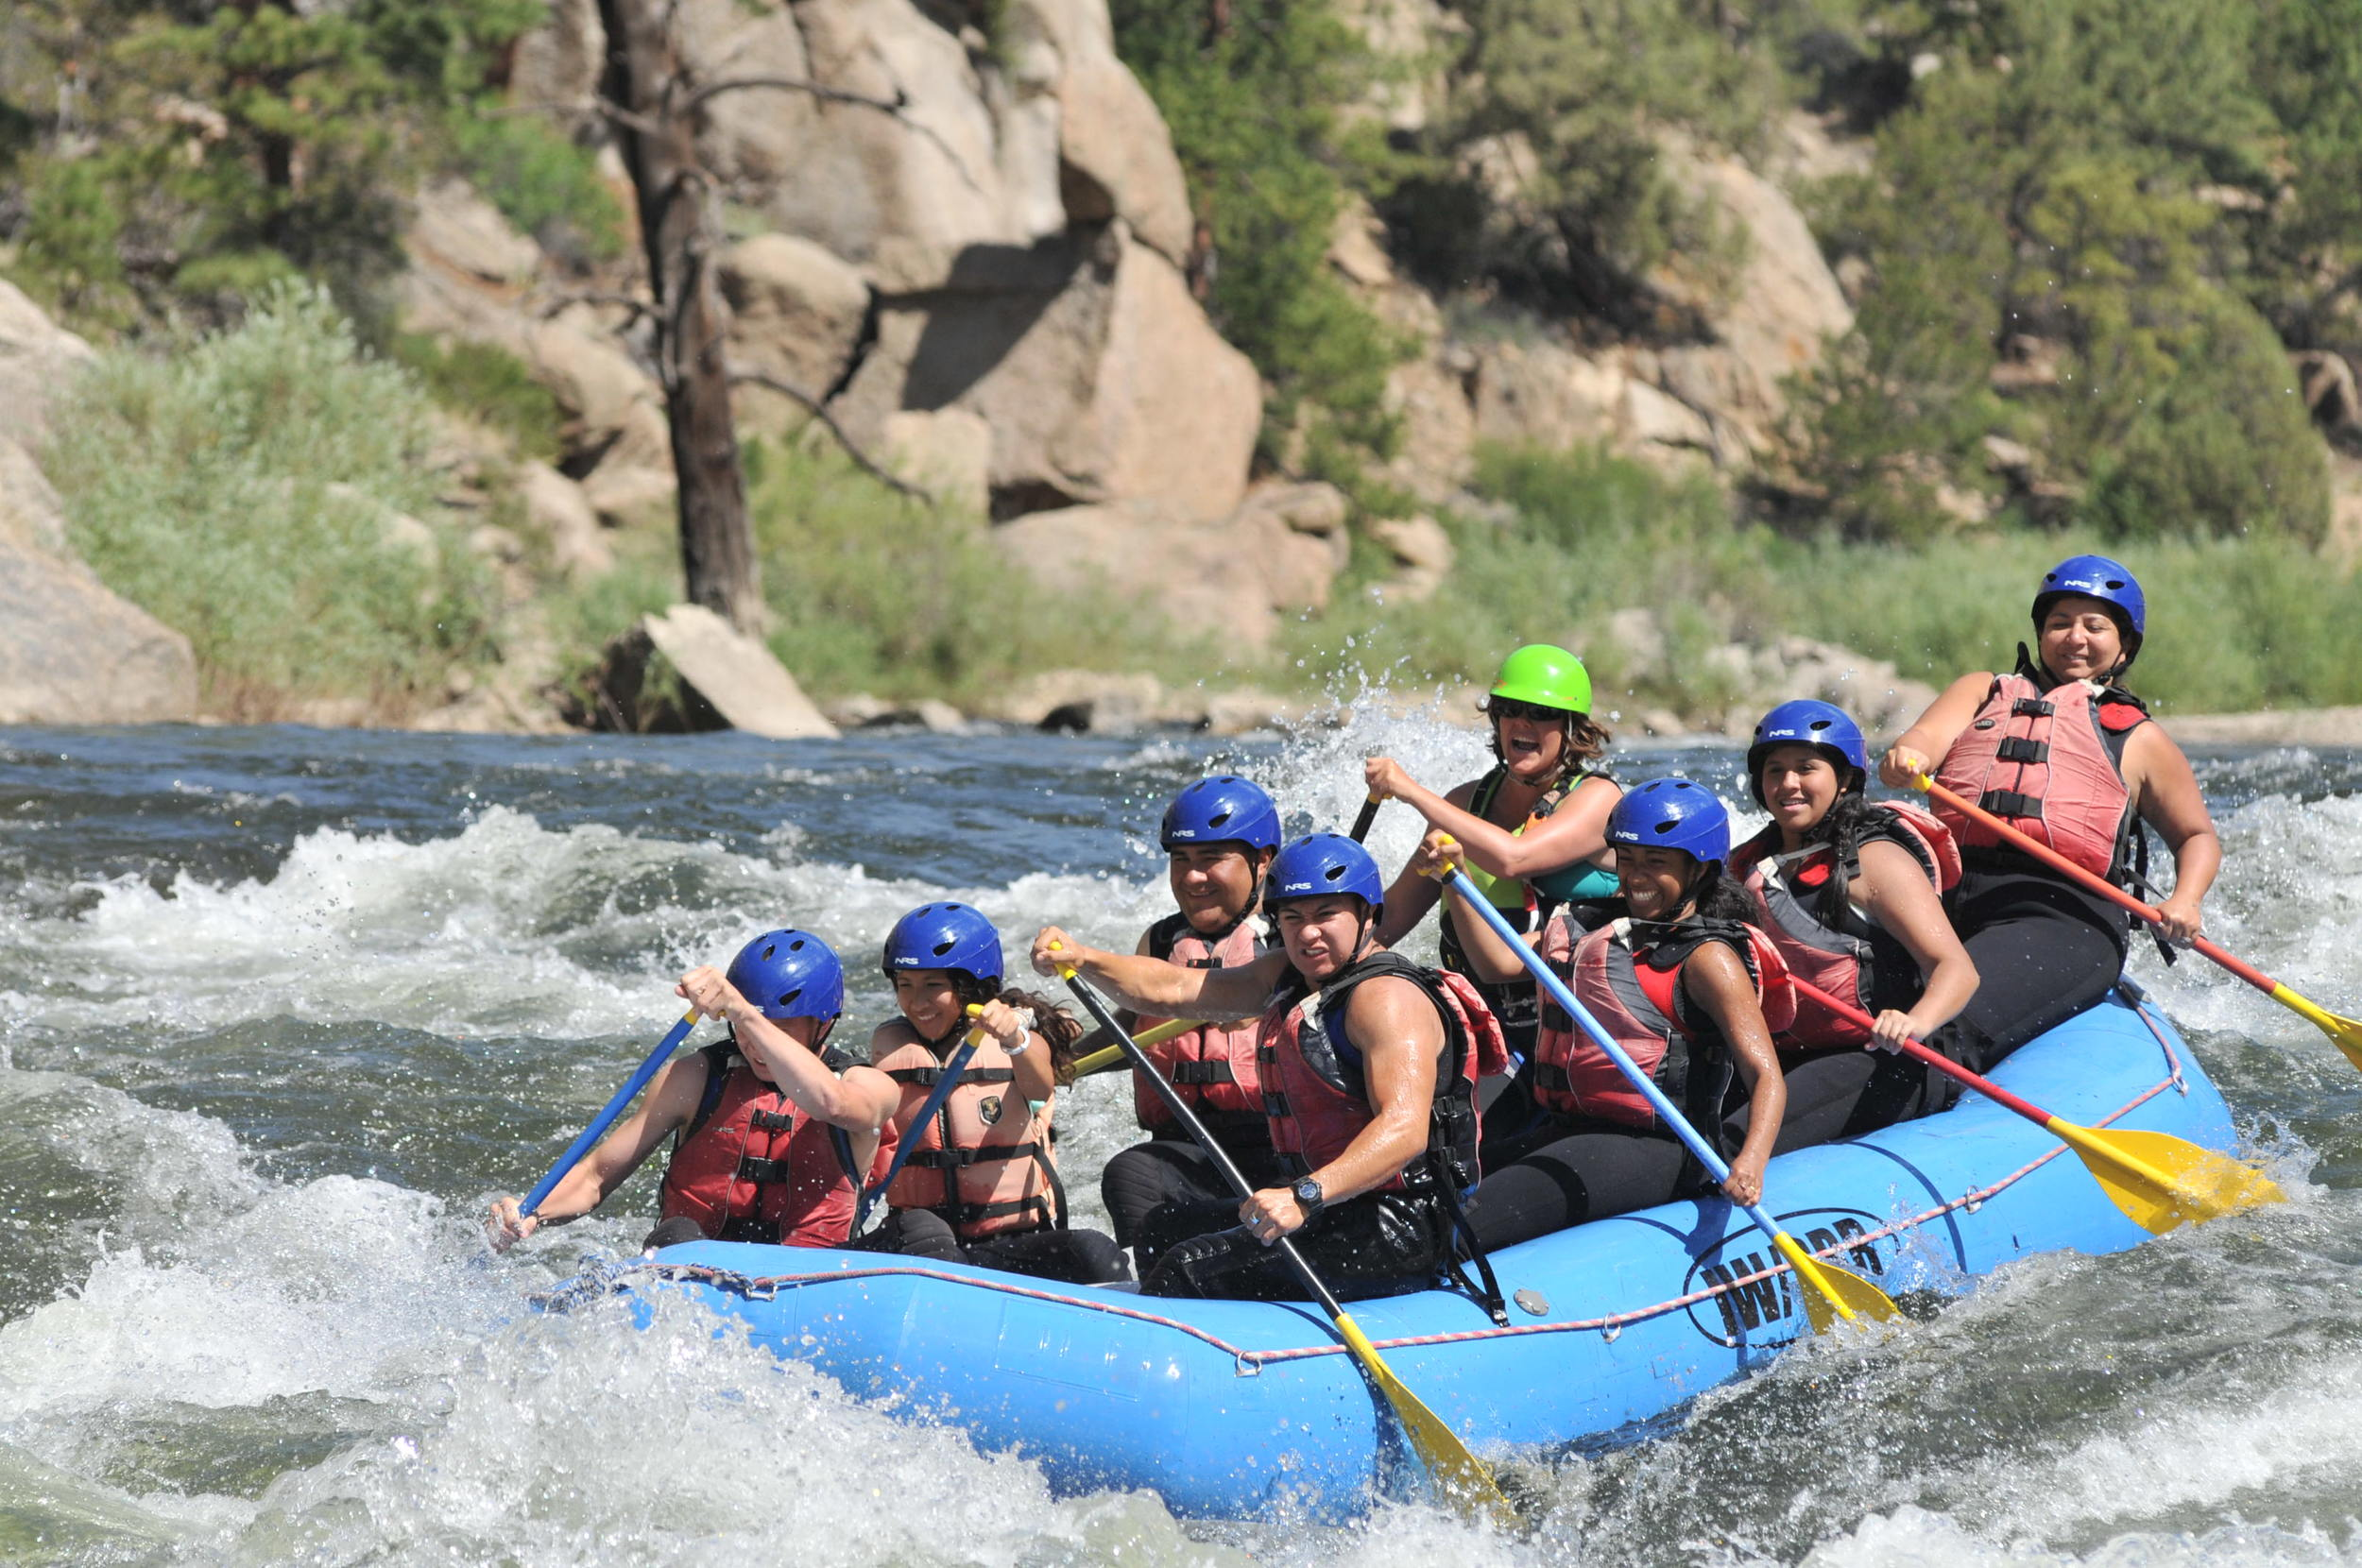 Whitewater rafting, Salida, CO